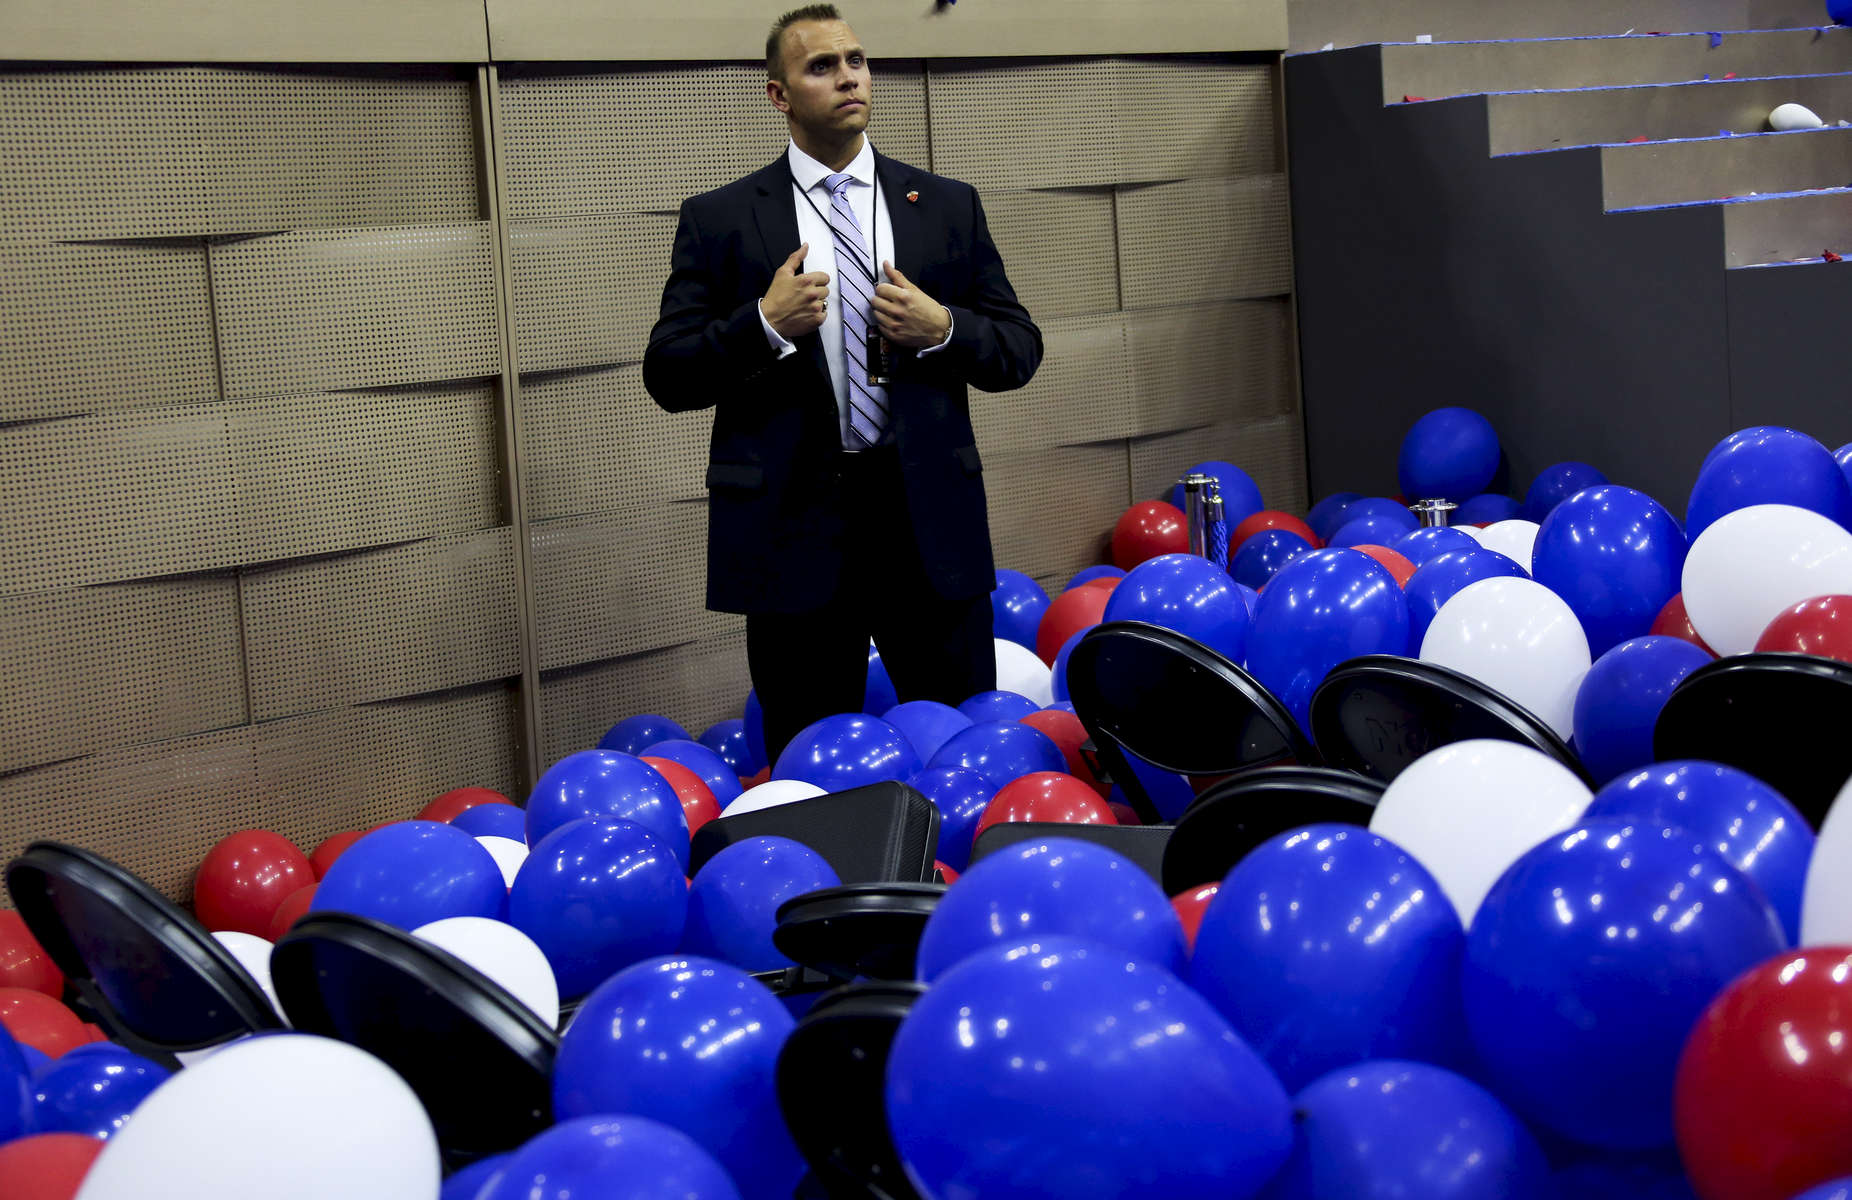 A Secret service agent stands in the balloons at the end of the DNC